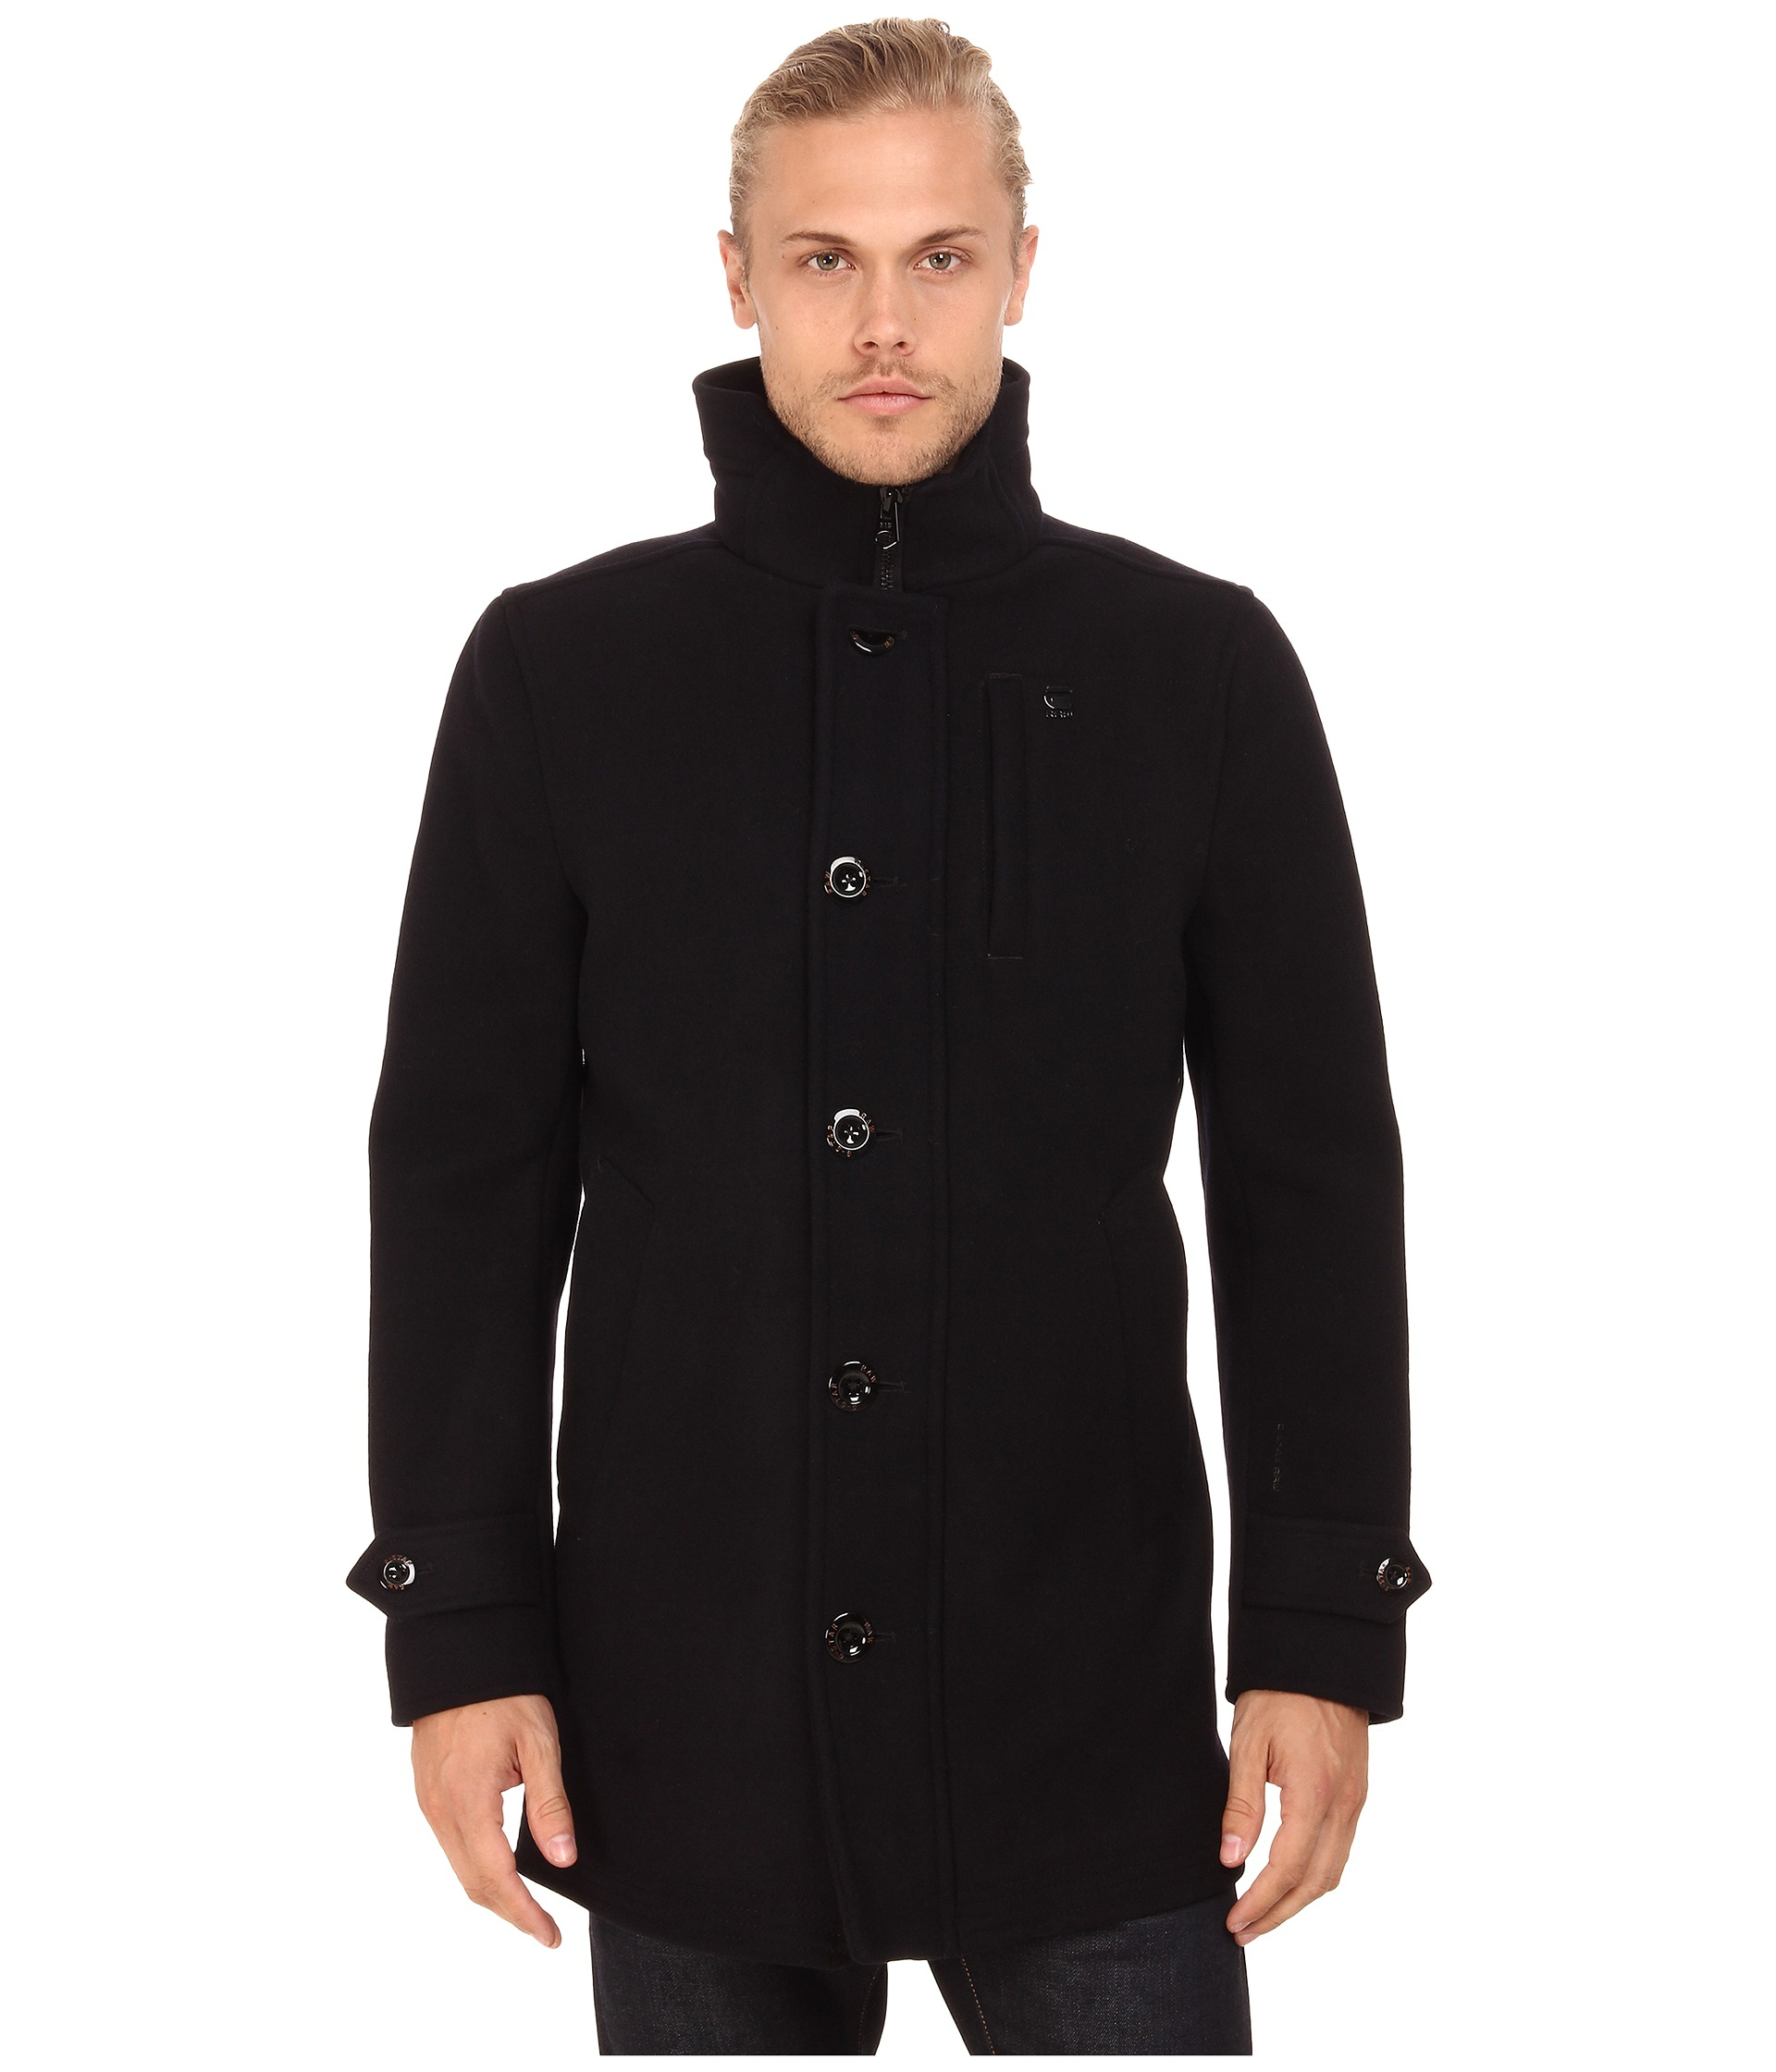 lyst g star raw wool garber trench coat in blue for men. Black Bedroom Furniture Sets. Home Design Ideas